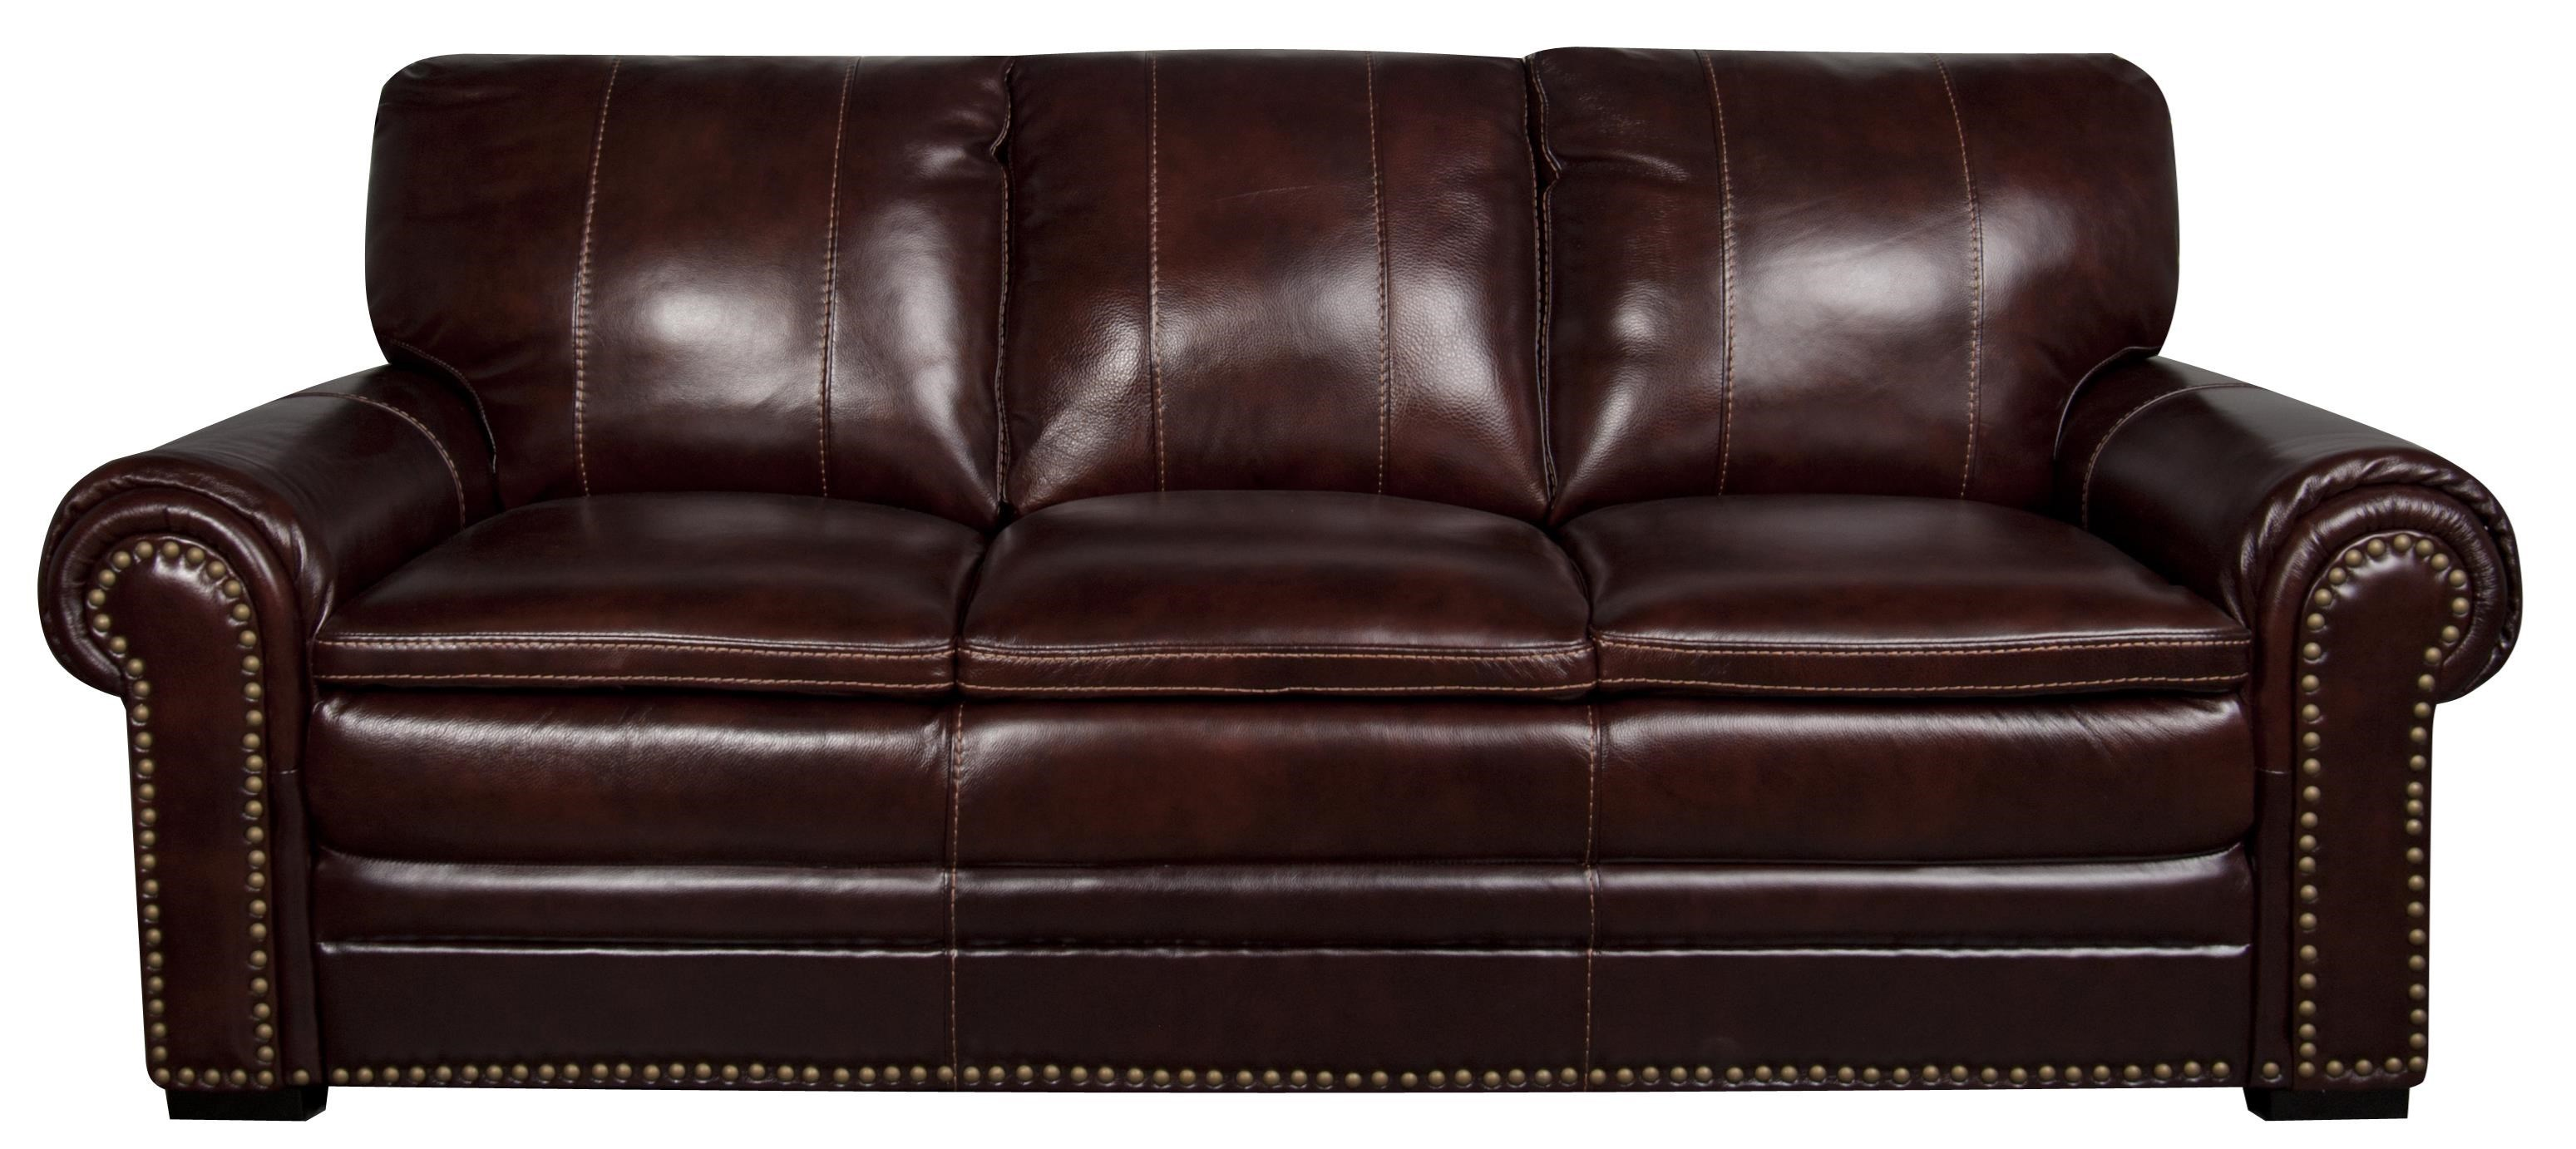 Charmant Morris Home ElwoodElwood Leather Match Sofa ...